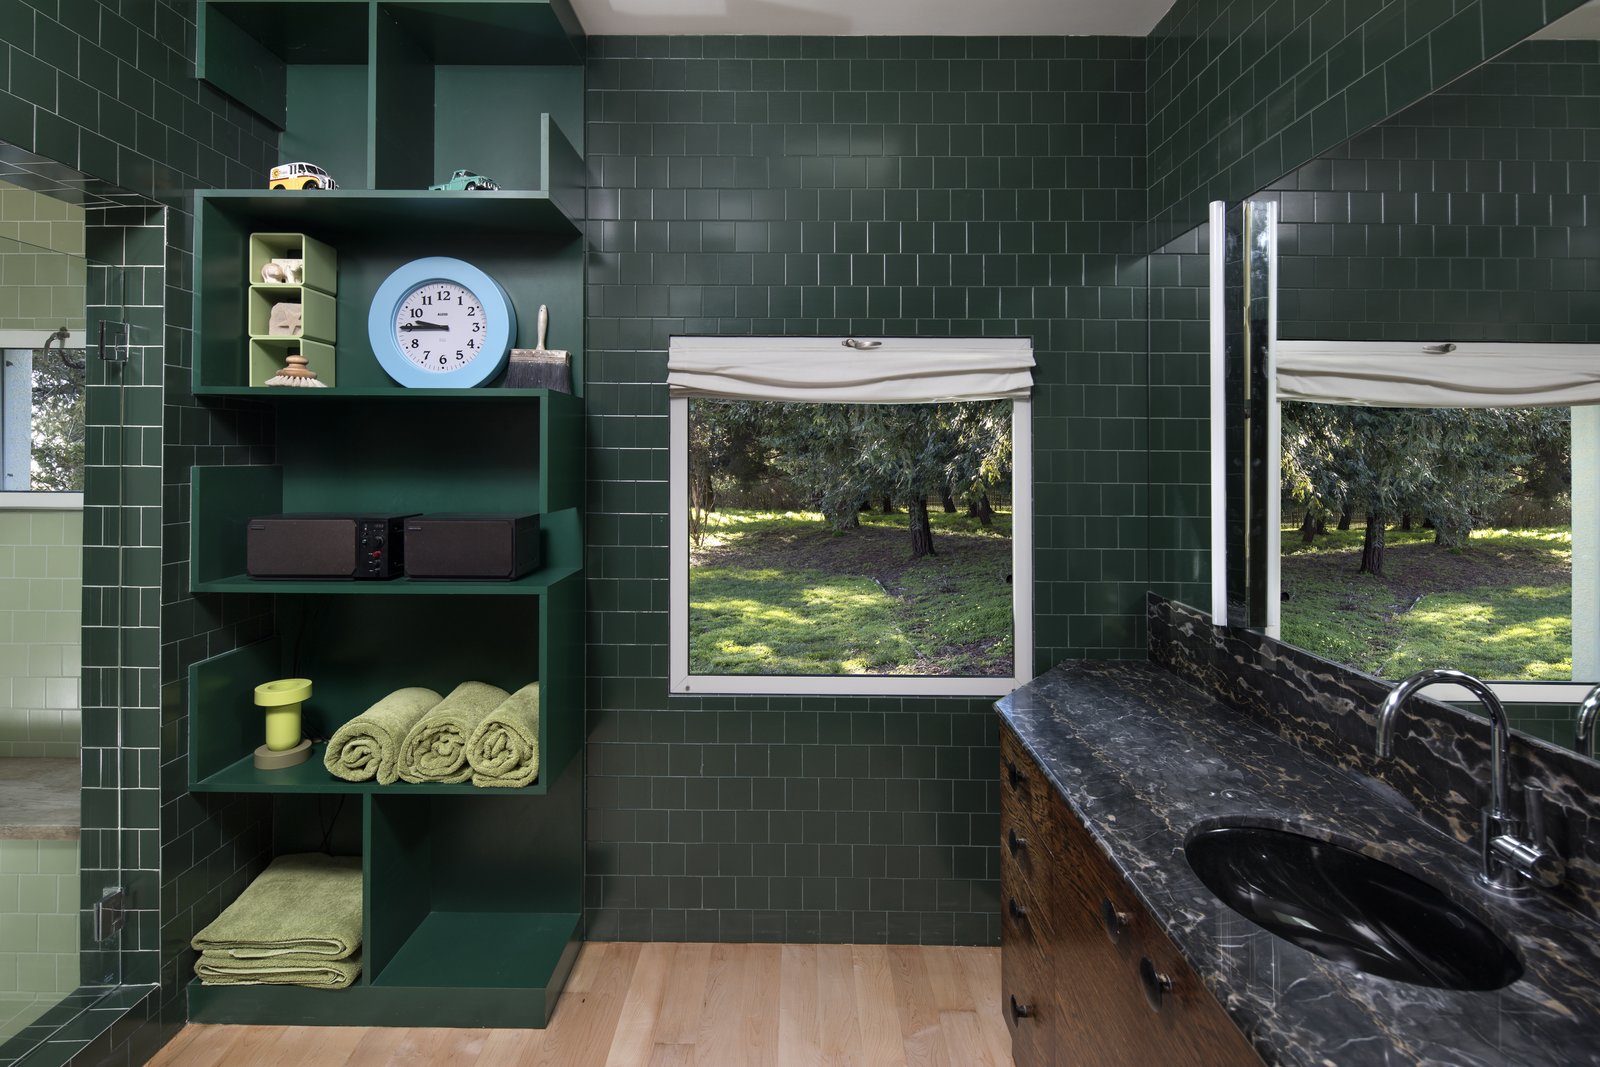 The master bathroom forges a connection to the outdoors through dark, forest green tile.  Photo 8 of 12 in IDEO Founder David Kelley Asks $13.5M For His Ettore Sottsass-Designed Masterpiece